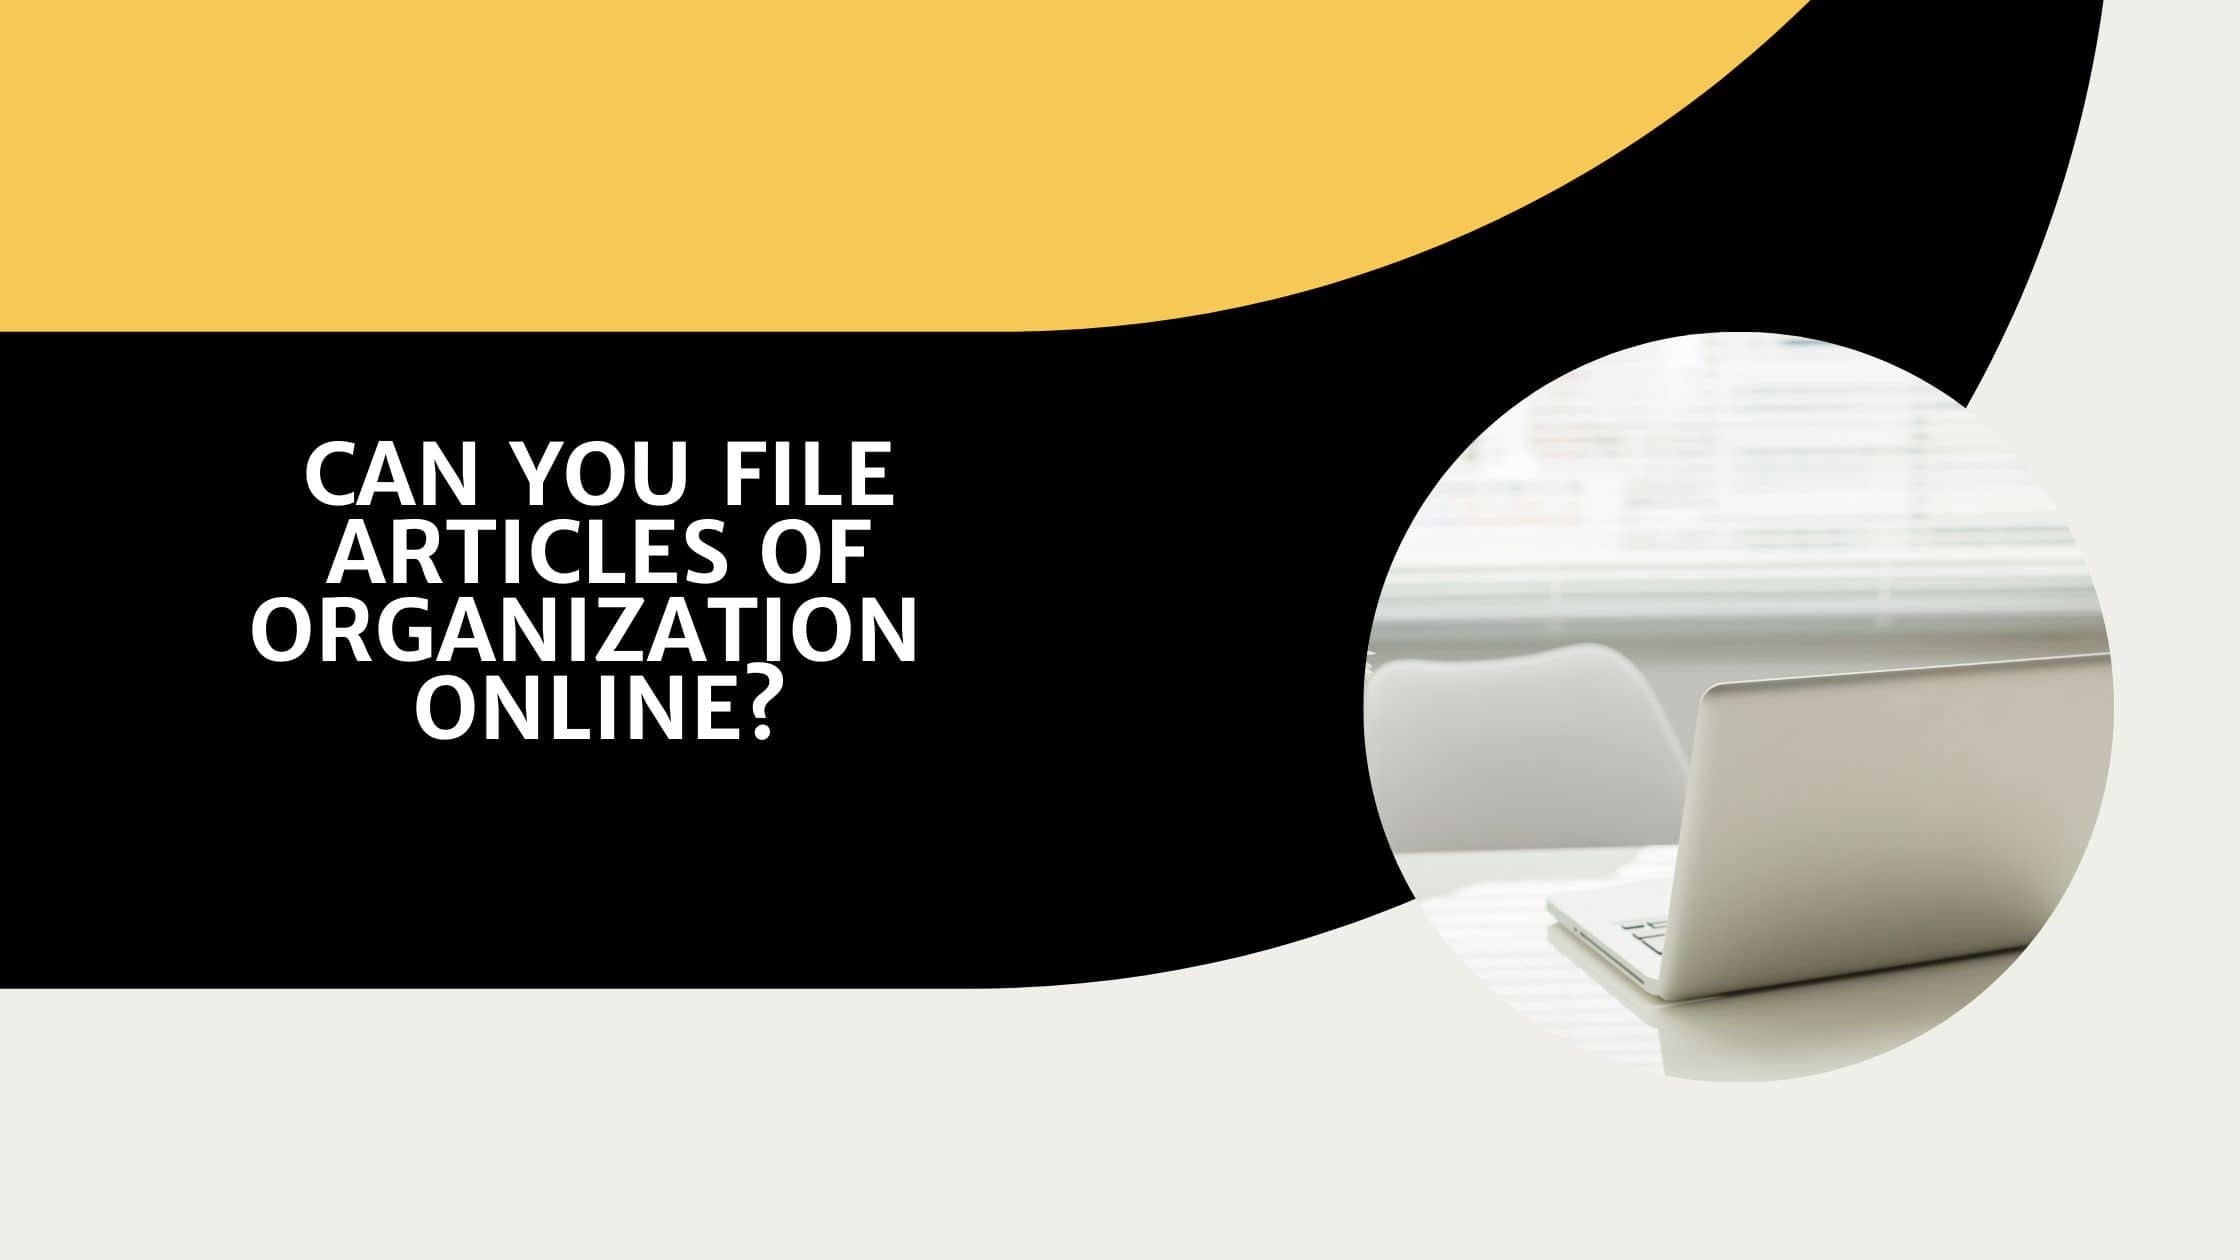 Can I File Articles of Organization Online?